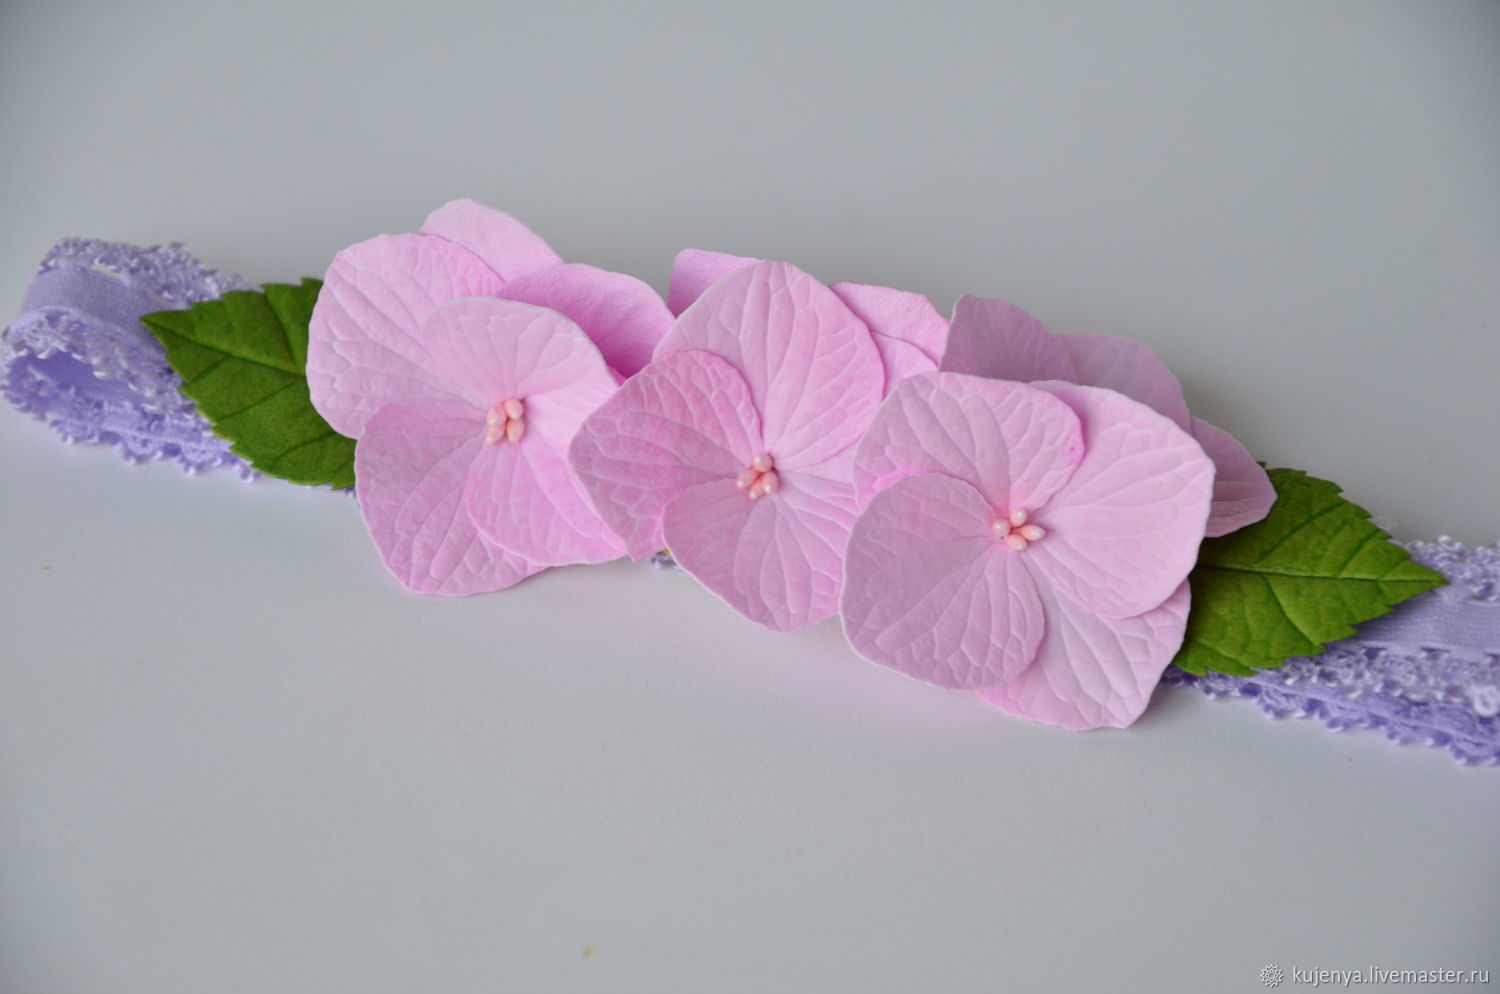 The Meditates Wearing With Flowers For Girls Soft Pink Shop